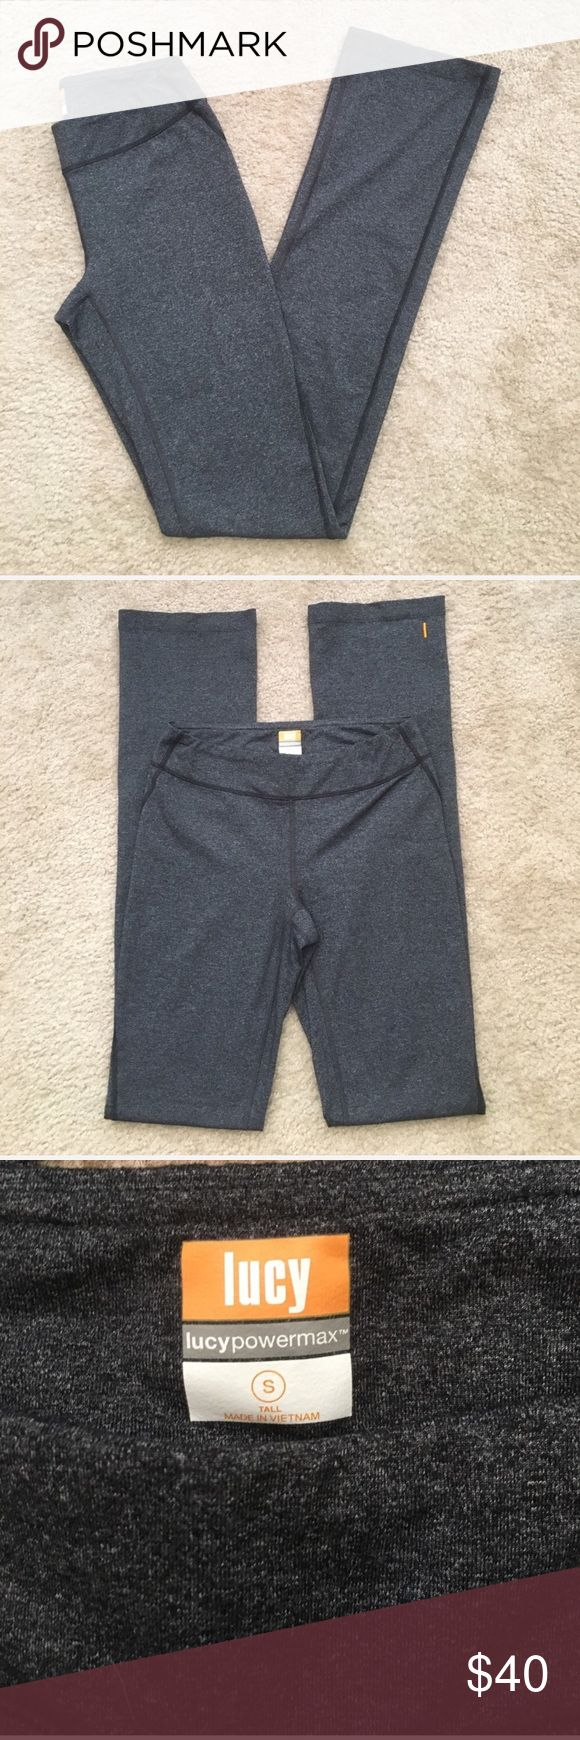 """Lucy Powermax tall yoga pants Dark grey straight leg powermax yoga pants from Lucy. Small interior pocket on left side of the waist. Size is small tall- 35"""" inseam Lucy Pants"""